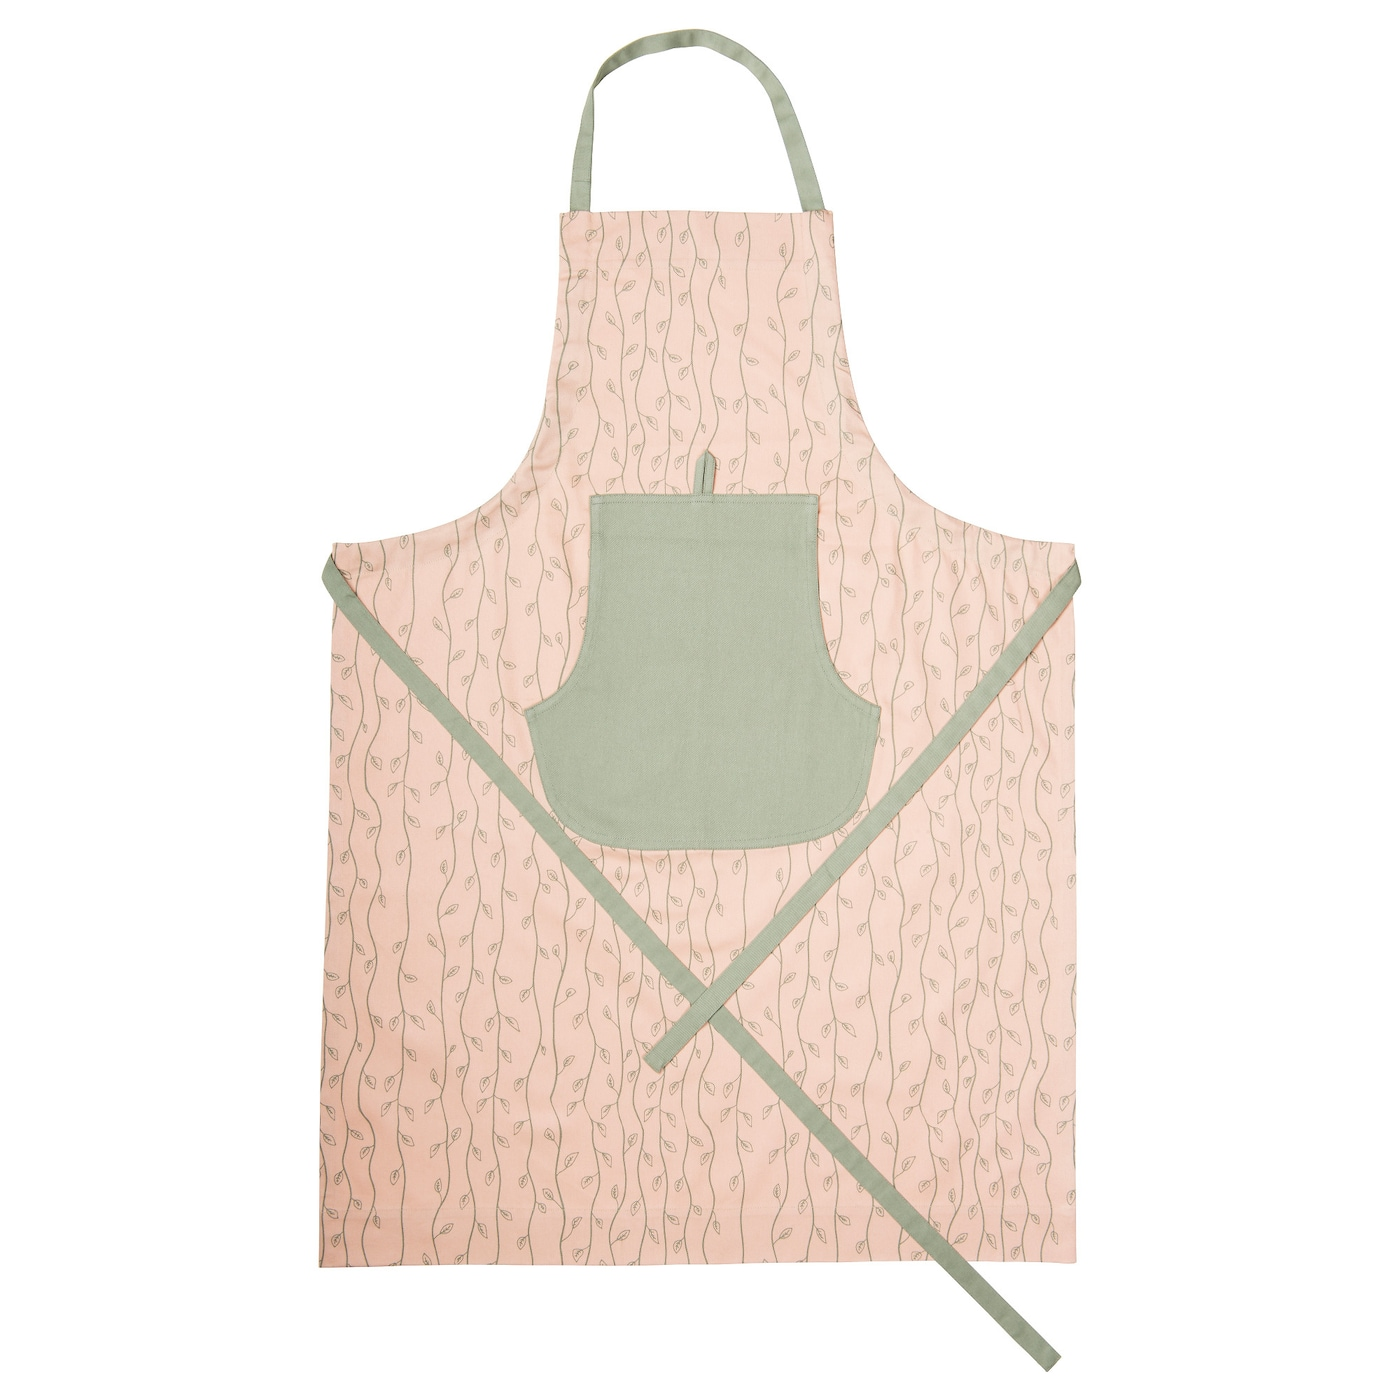 IKEA HEMGJORD apron This handmade product is made by a social entrepreneur in Karnataka, India.